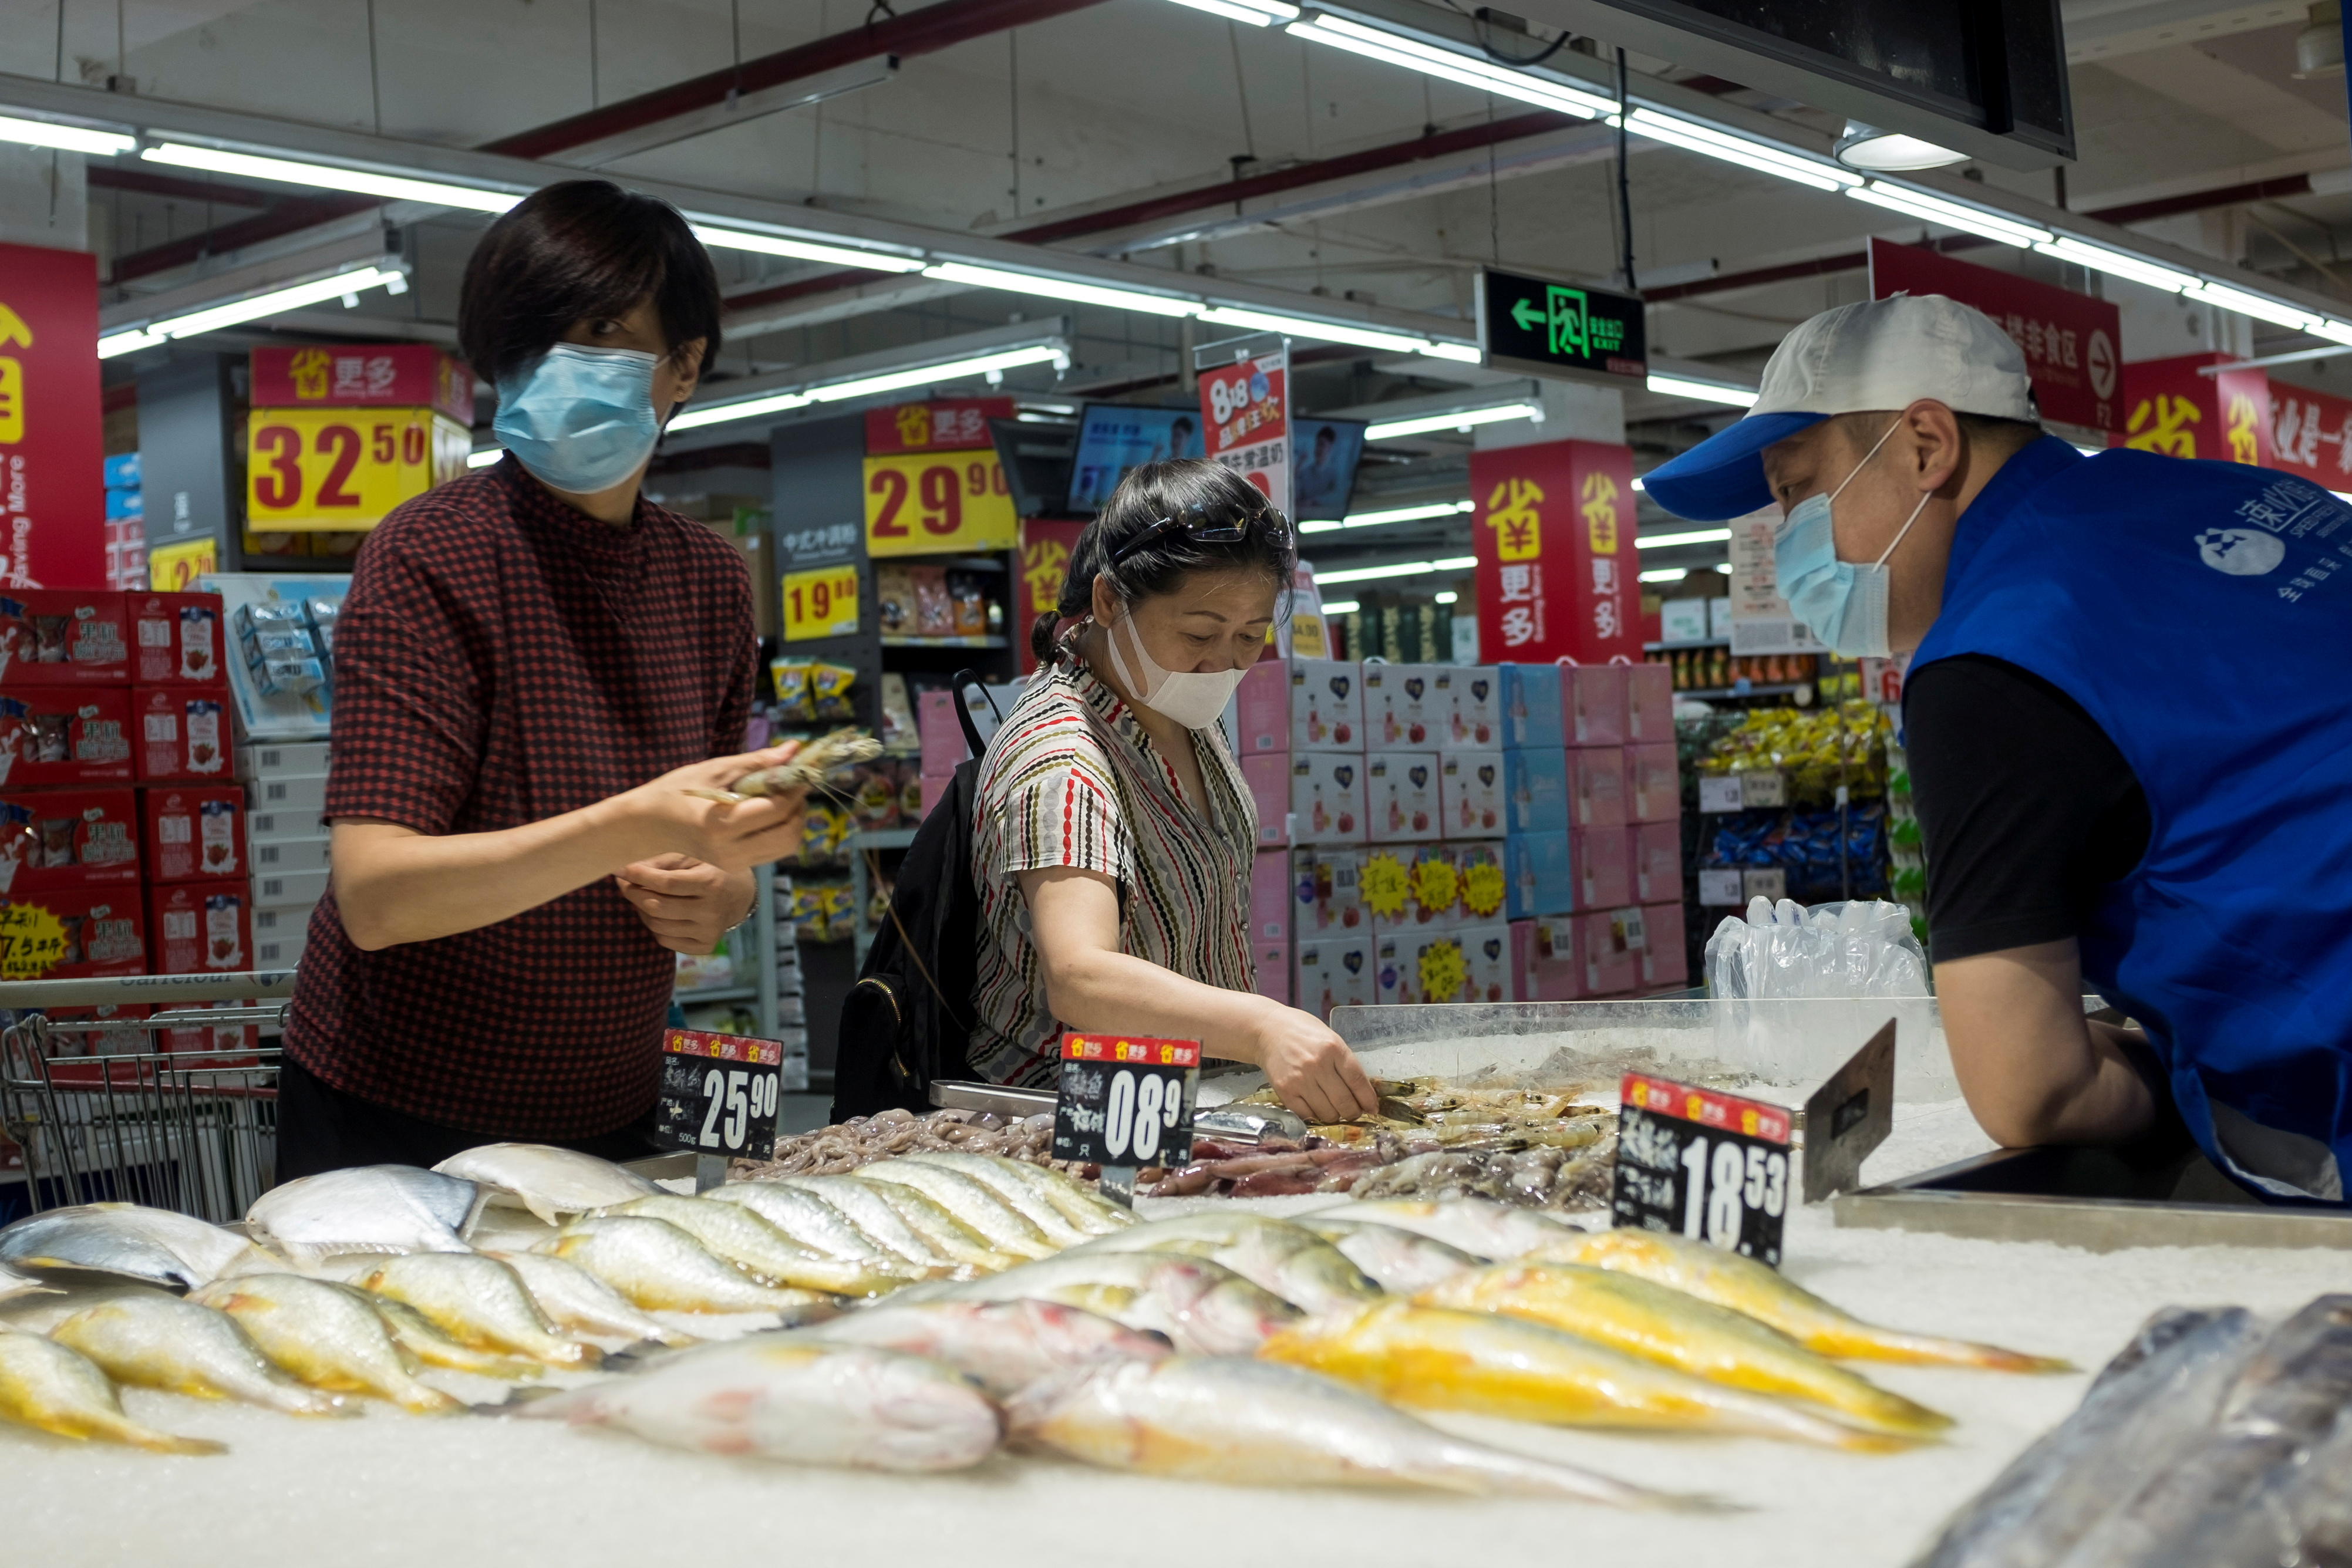 People look at fresh seafood in a supermarket following an outbreak of the coronavirus disease (COVID-19) in Beijing, China, August 13, 2020. REUTERS/Thomas Peter/File Photo